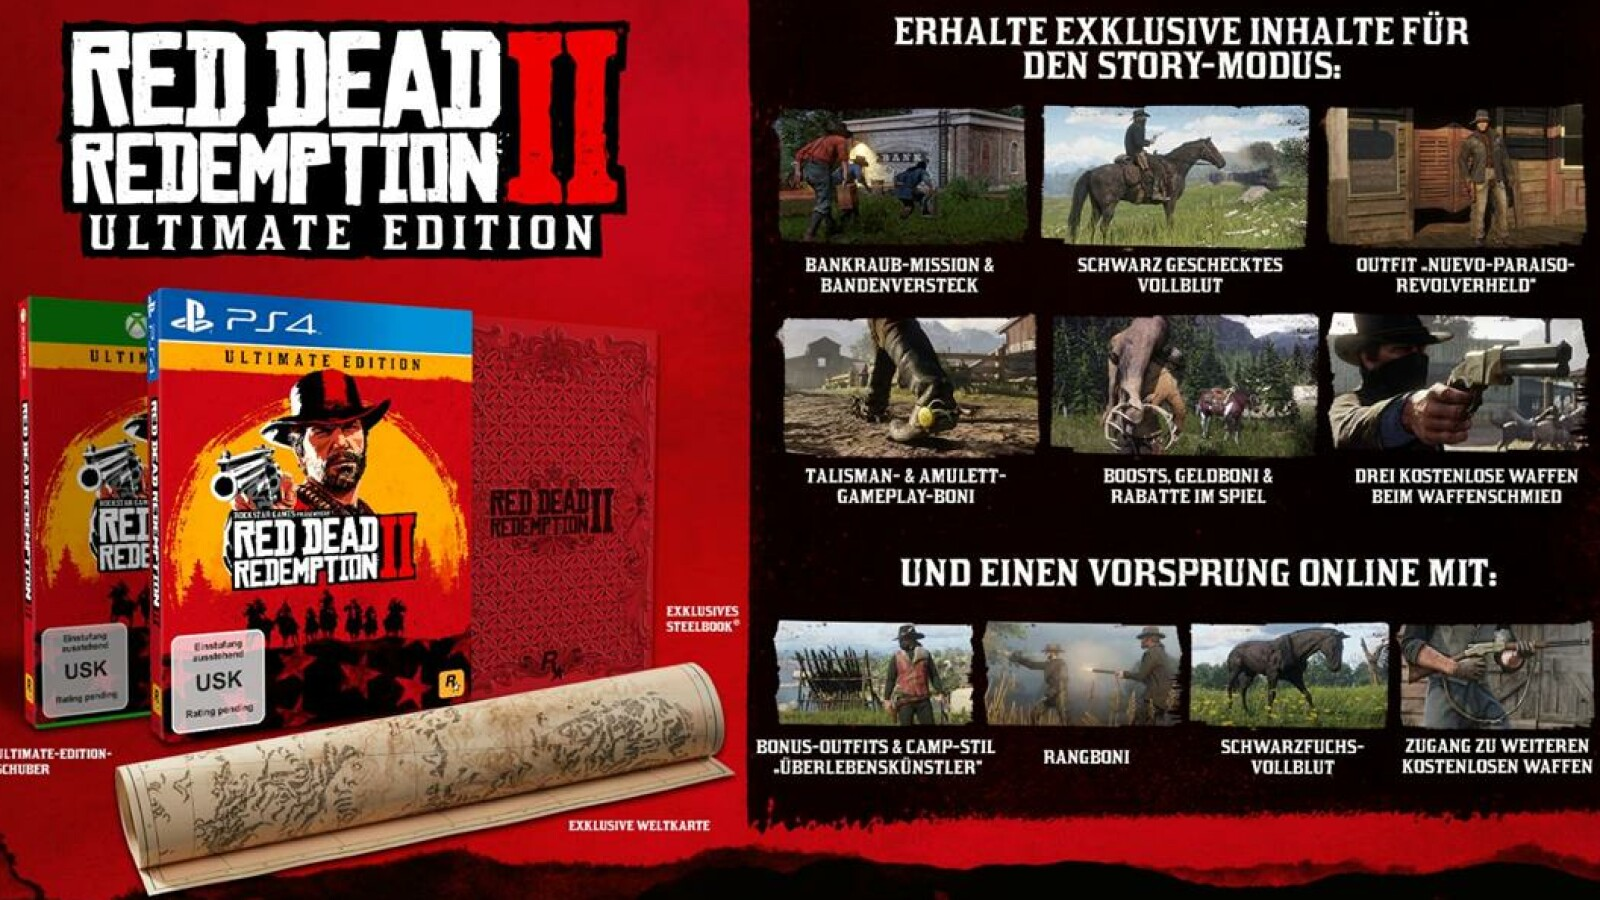 red dead redemption 2 ultimate edition content xbox one